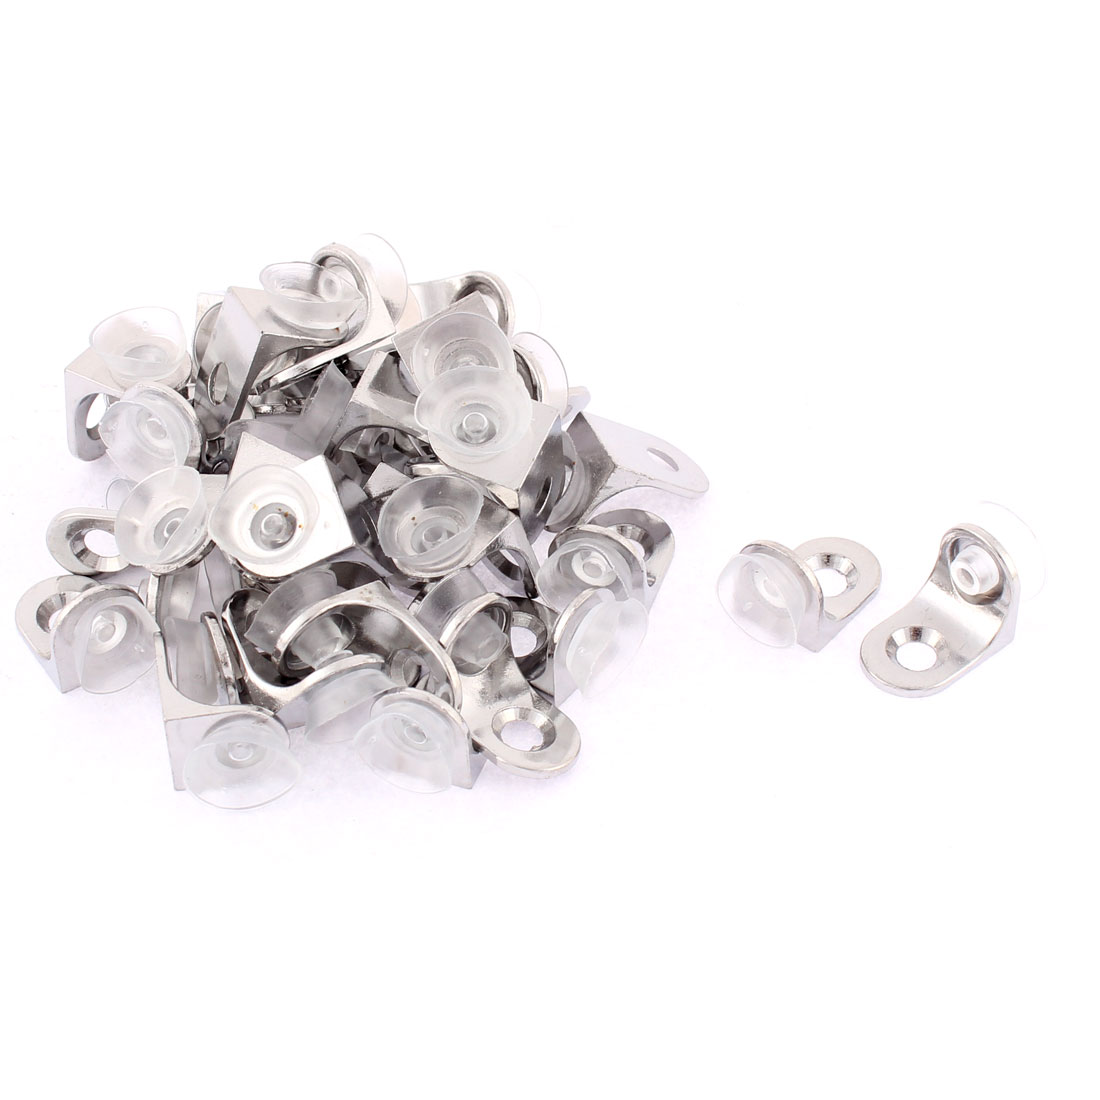 Right Degree Mounting Glass Shelf Support Clamp Clip Brackets Holder 40pcs